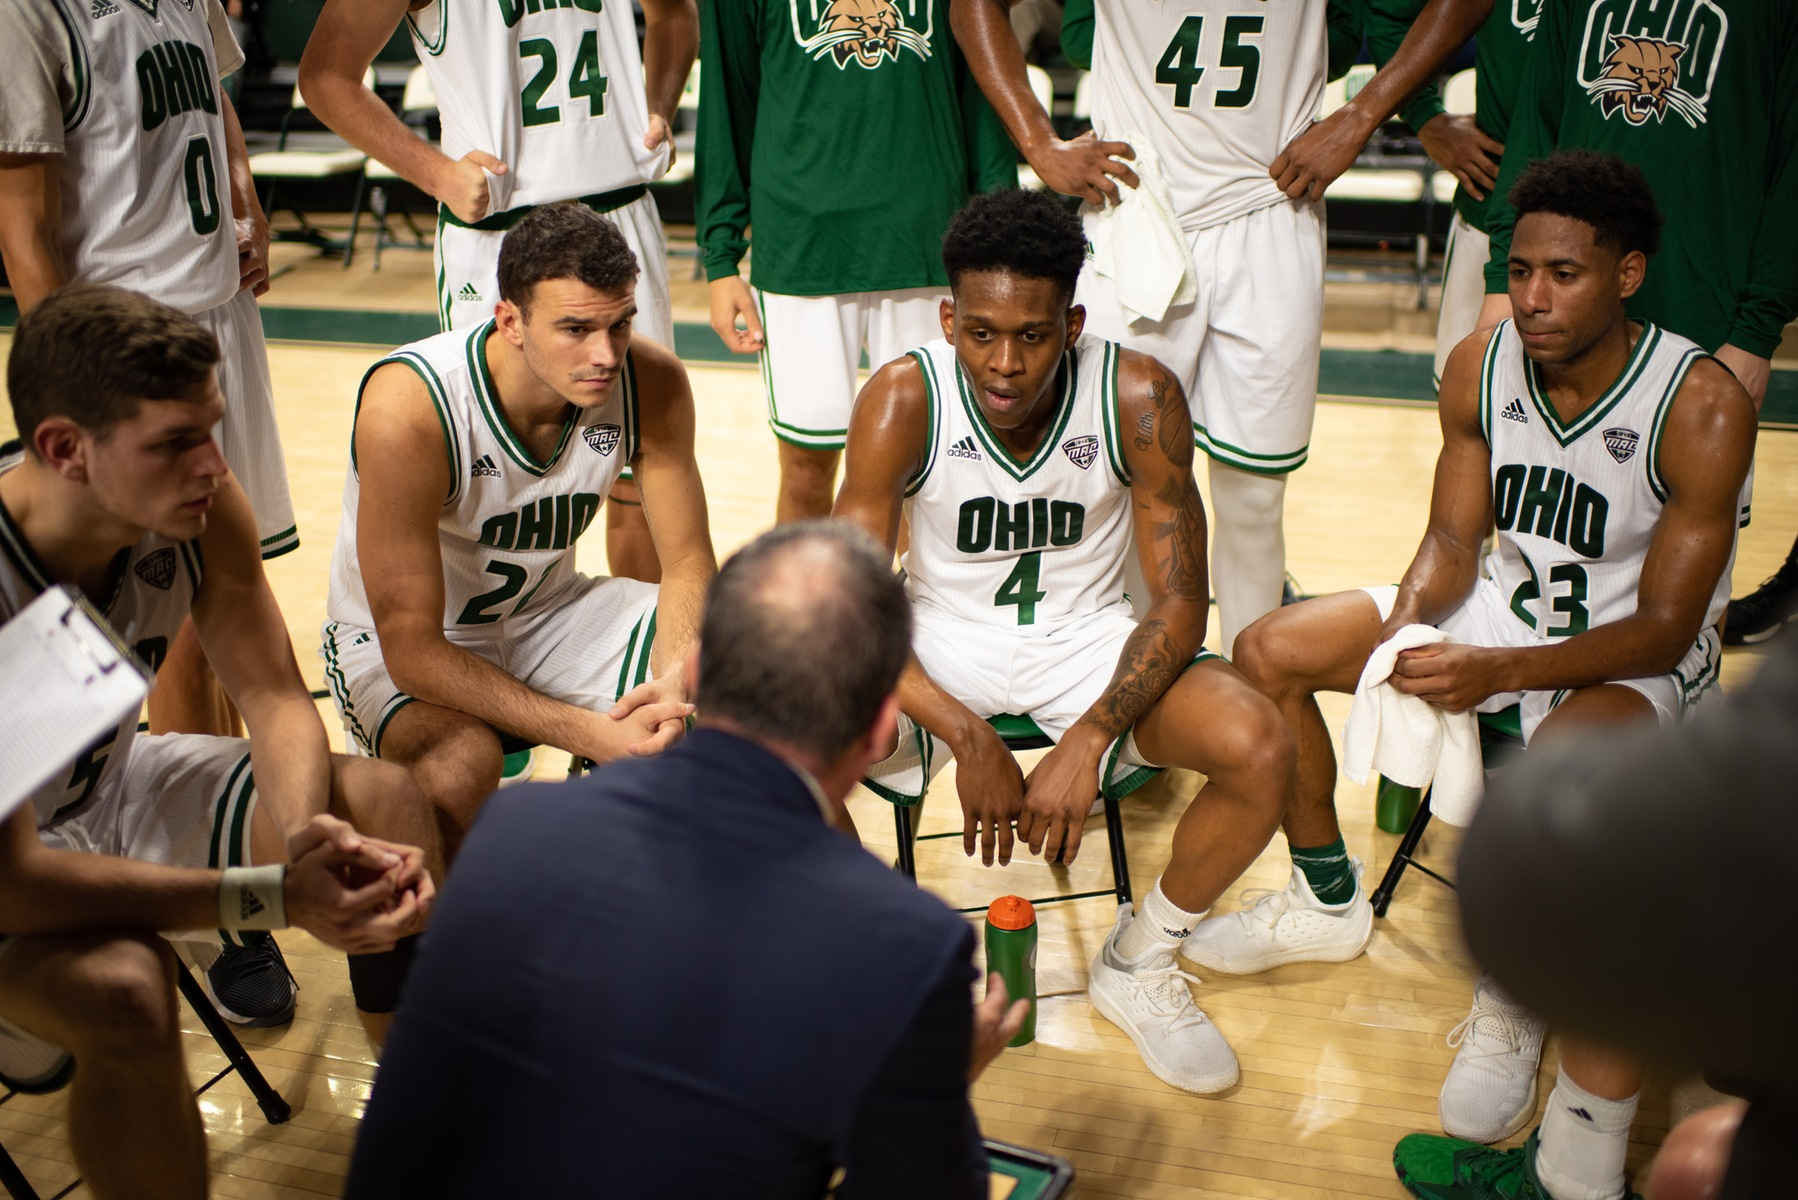 Ohio Men's Basketball Set to Host Iona on Tuesday inside the Convo